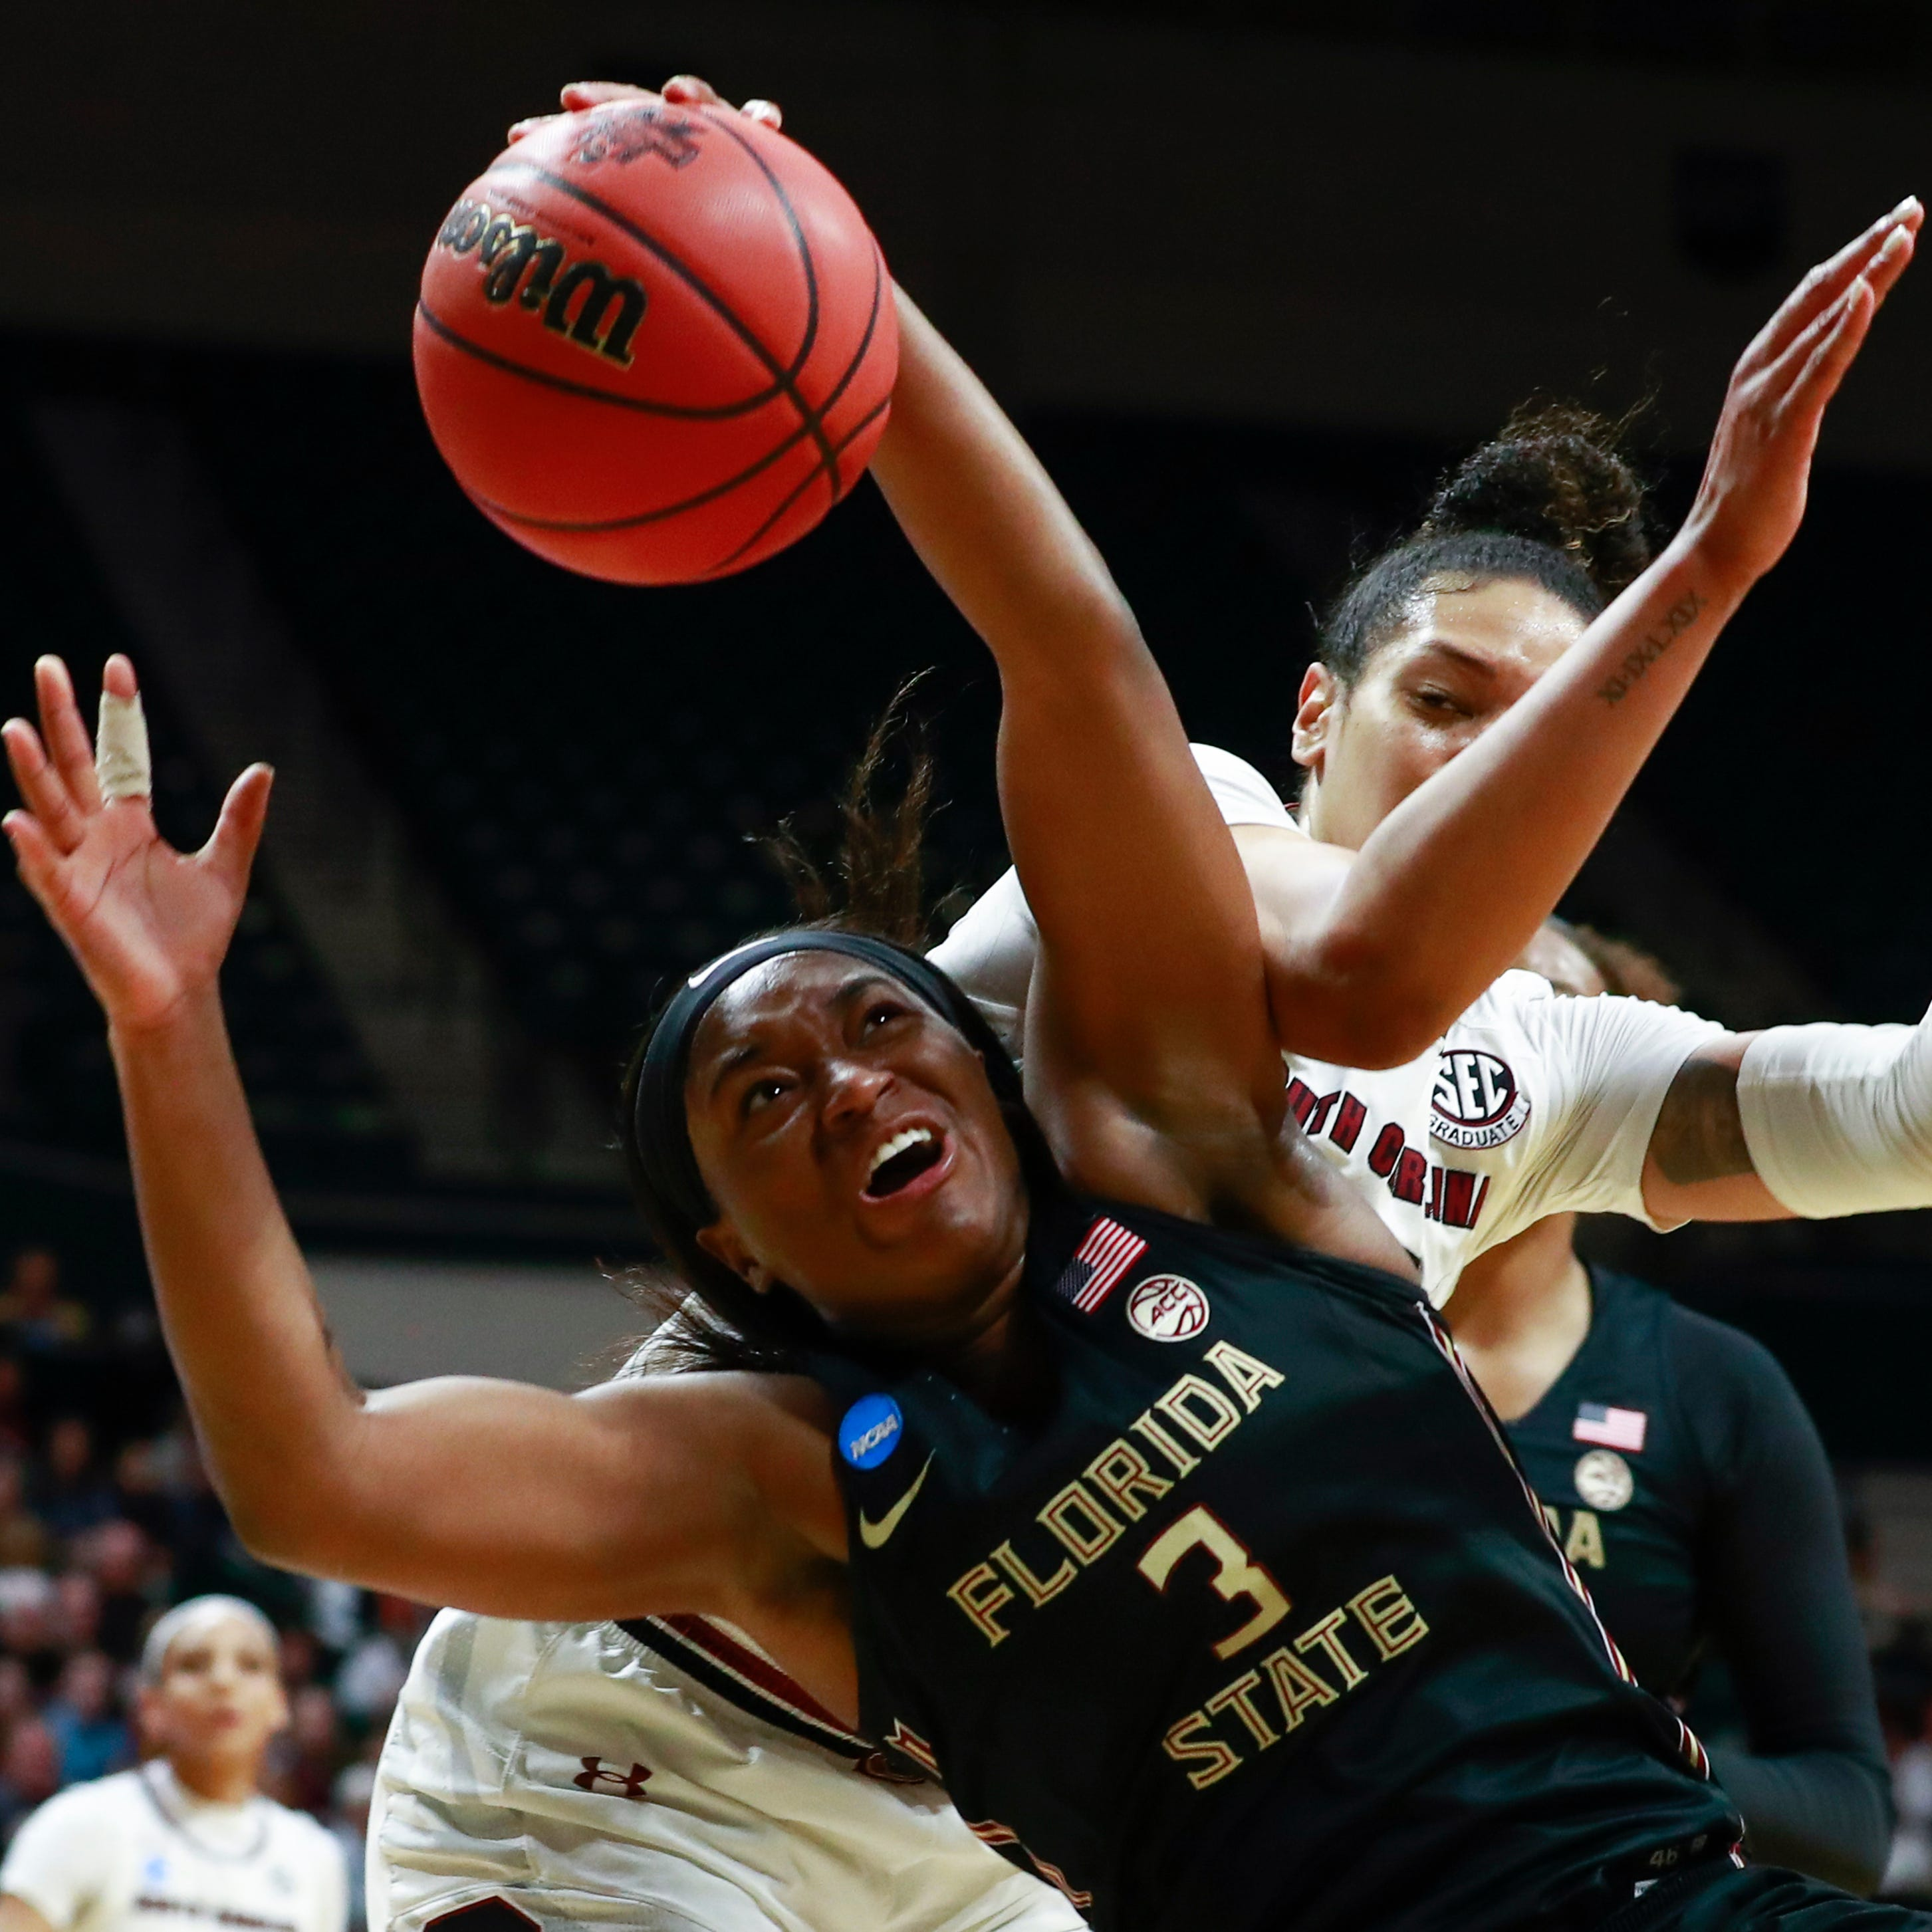 Seminoles' season concludes in second round